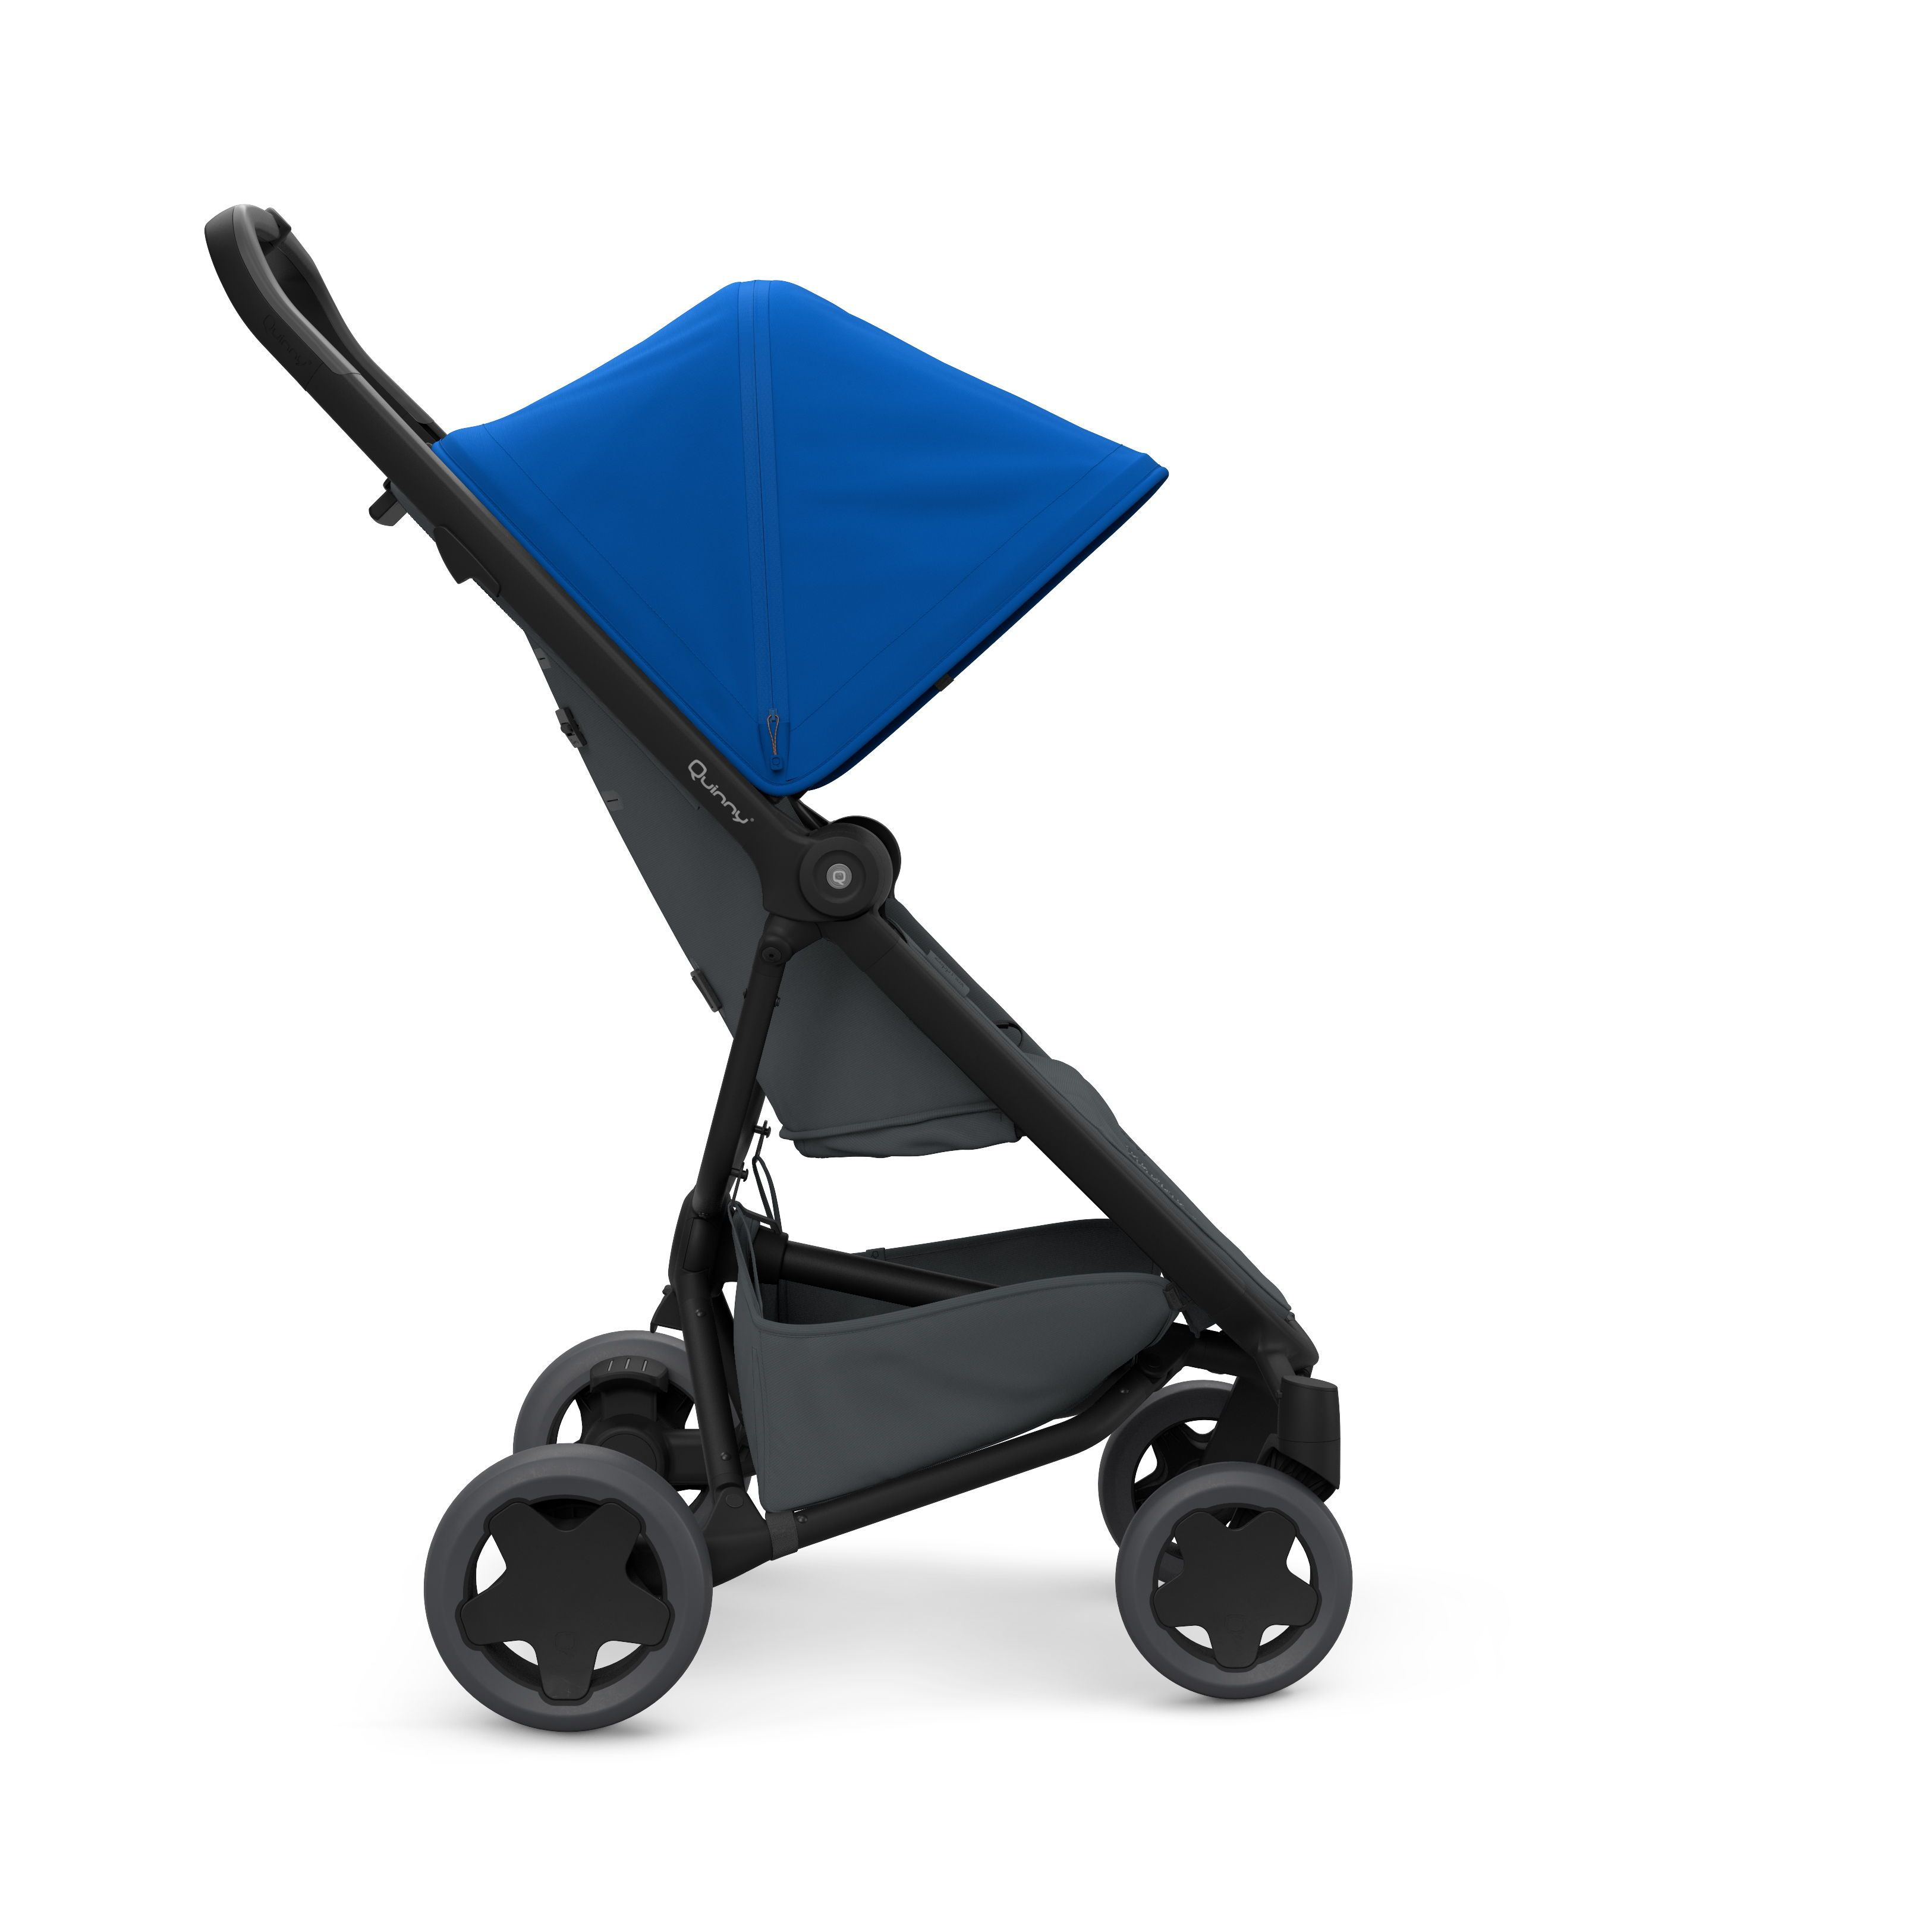 Discover our Quinny Zapp Flex Plus. The perfect ultralight